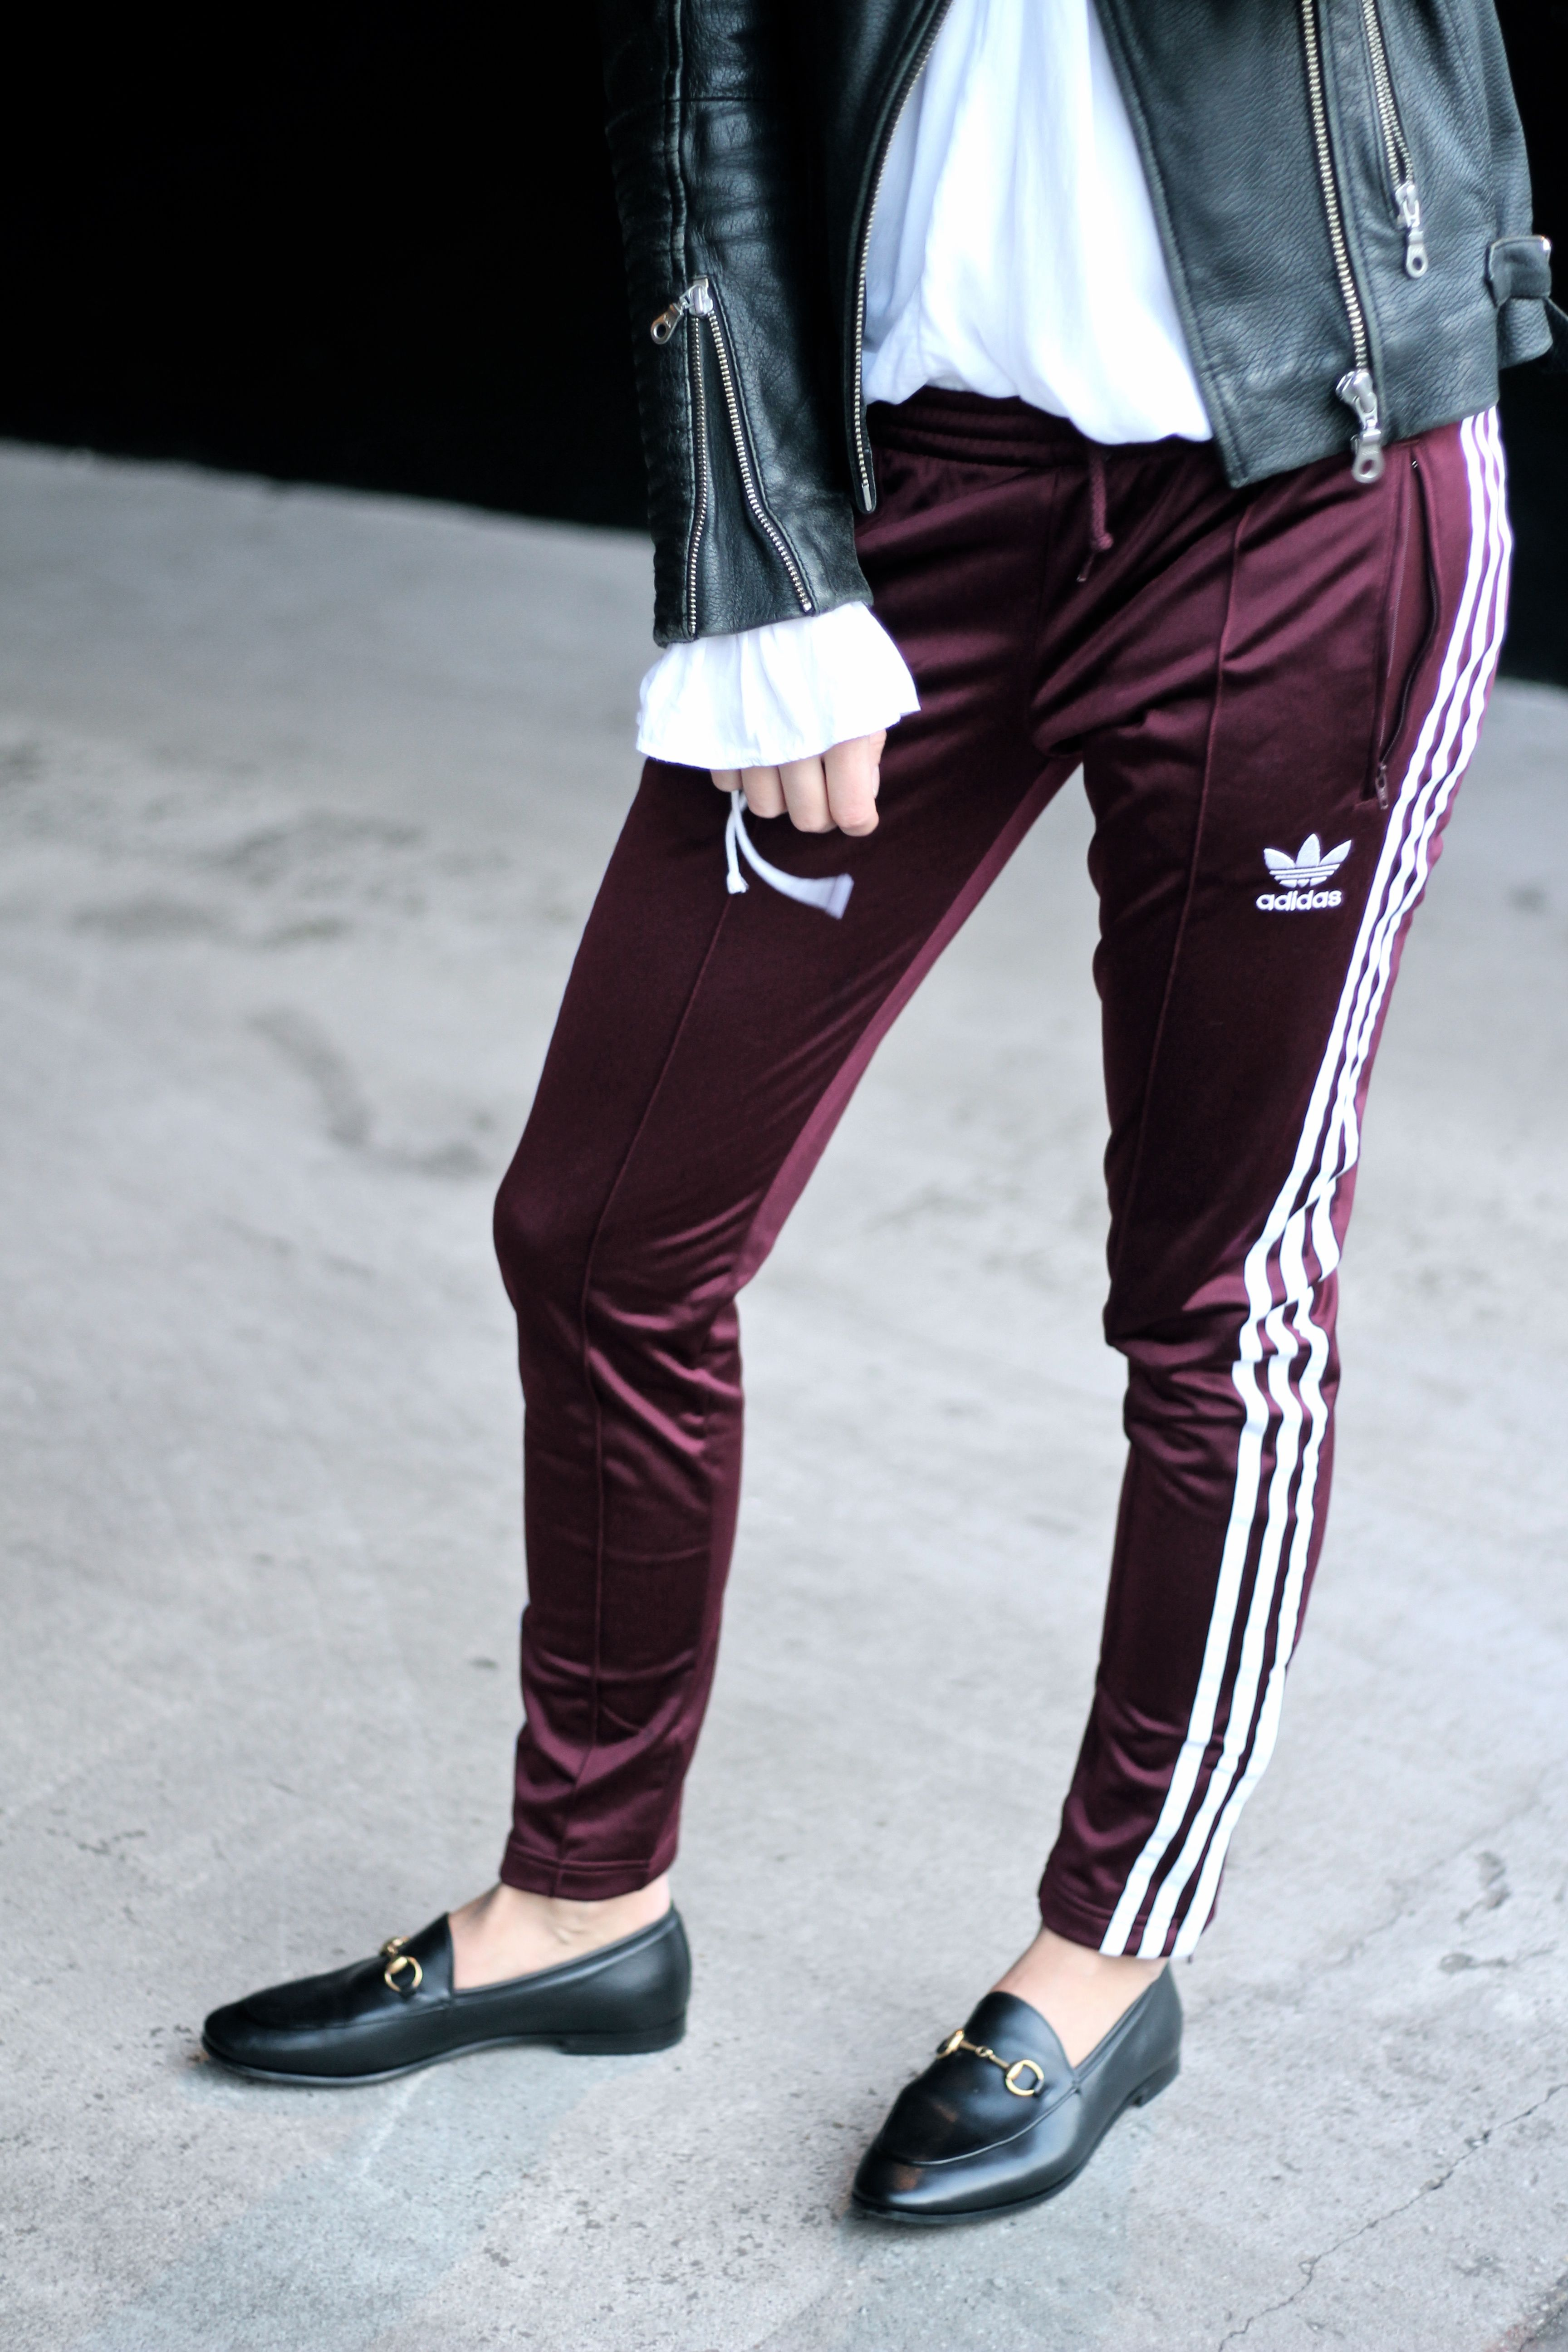 2be563be15c Gucci jordaan loafers mixed with Adidas burgundy sports pants ...